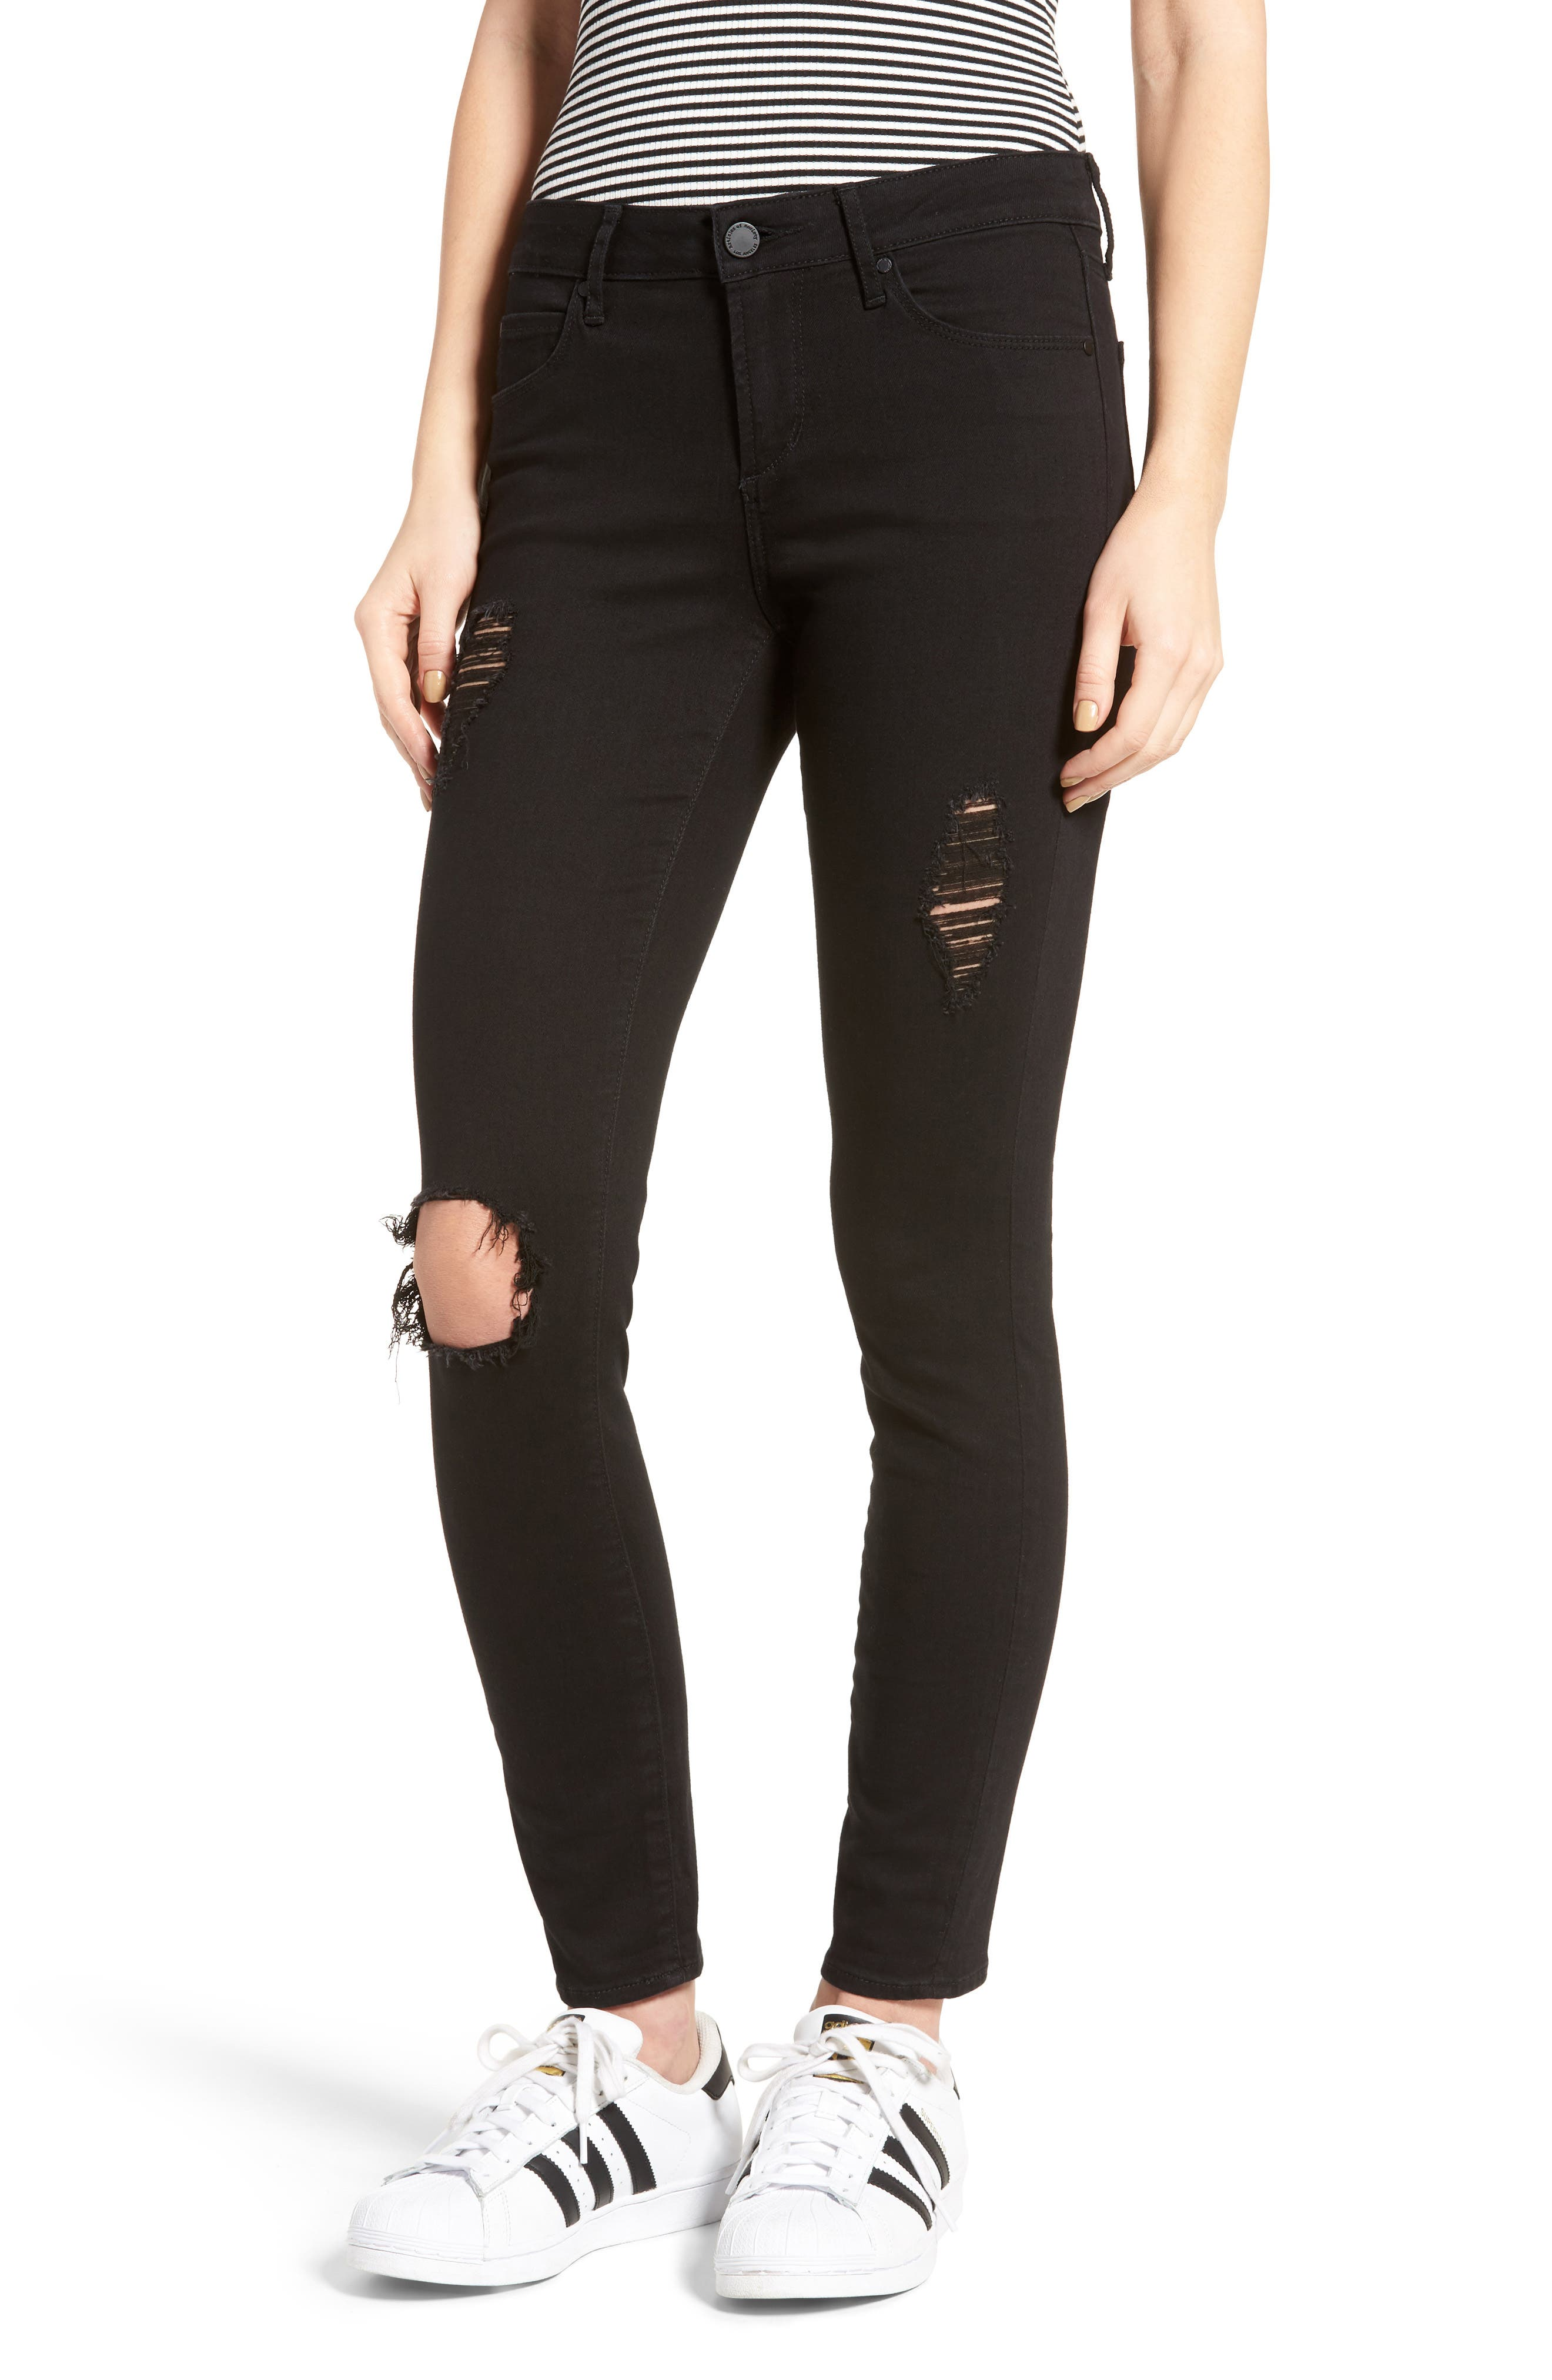 Alternate Image 1 Selected - Articles of Society Karen Ripped Crop Skinny Jeans (Carbon)